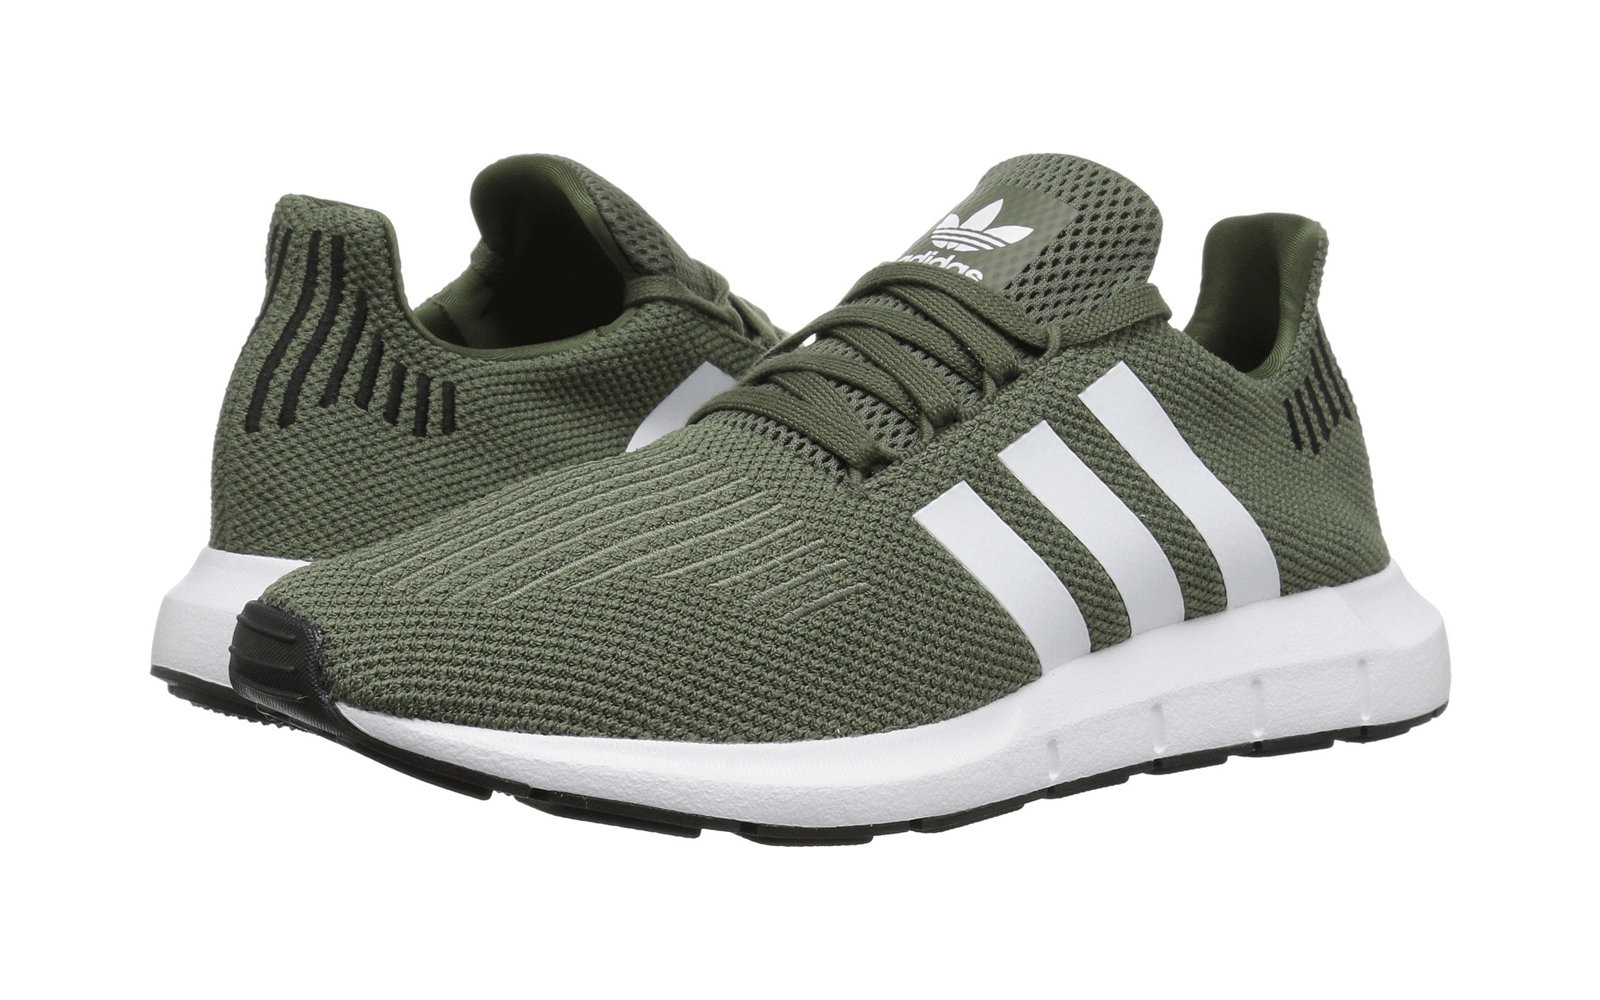 344c140dc210 Adidas Originals Swift Run W in Base Green White Black. Best Sneakers on  Sale at Zappos